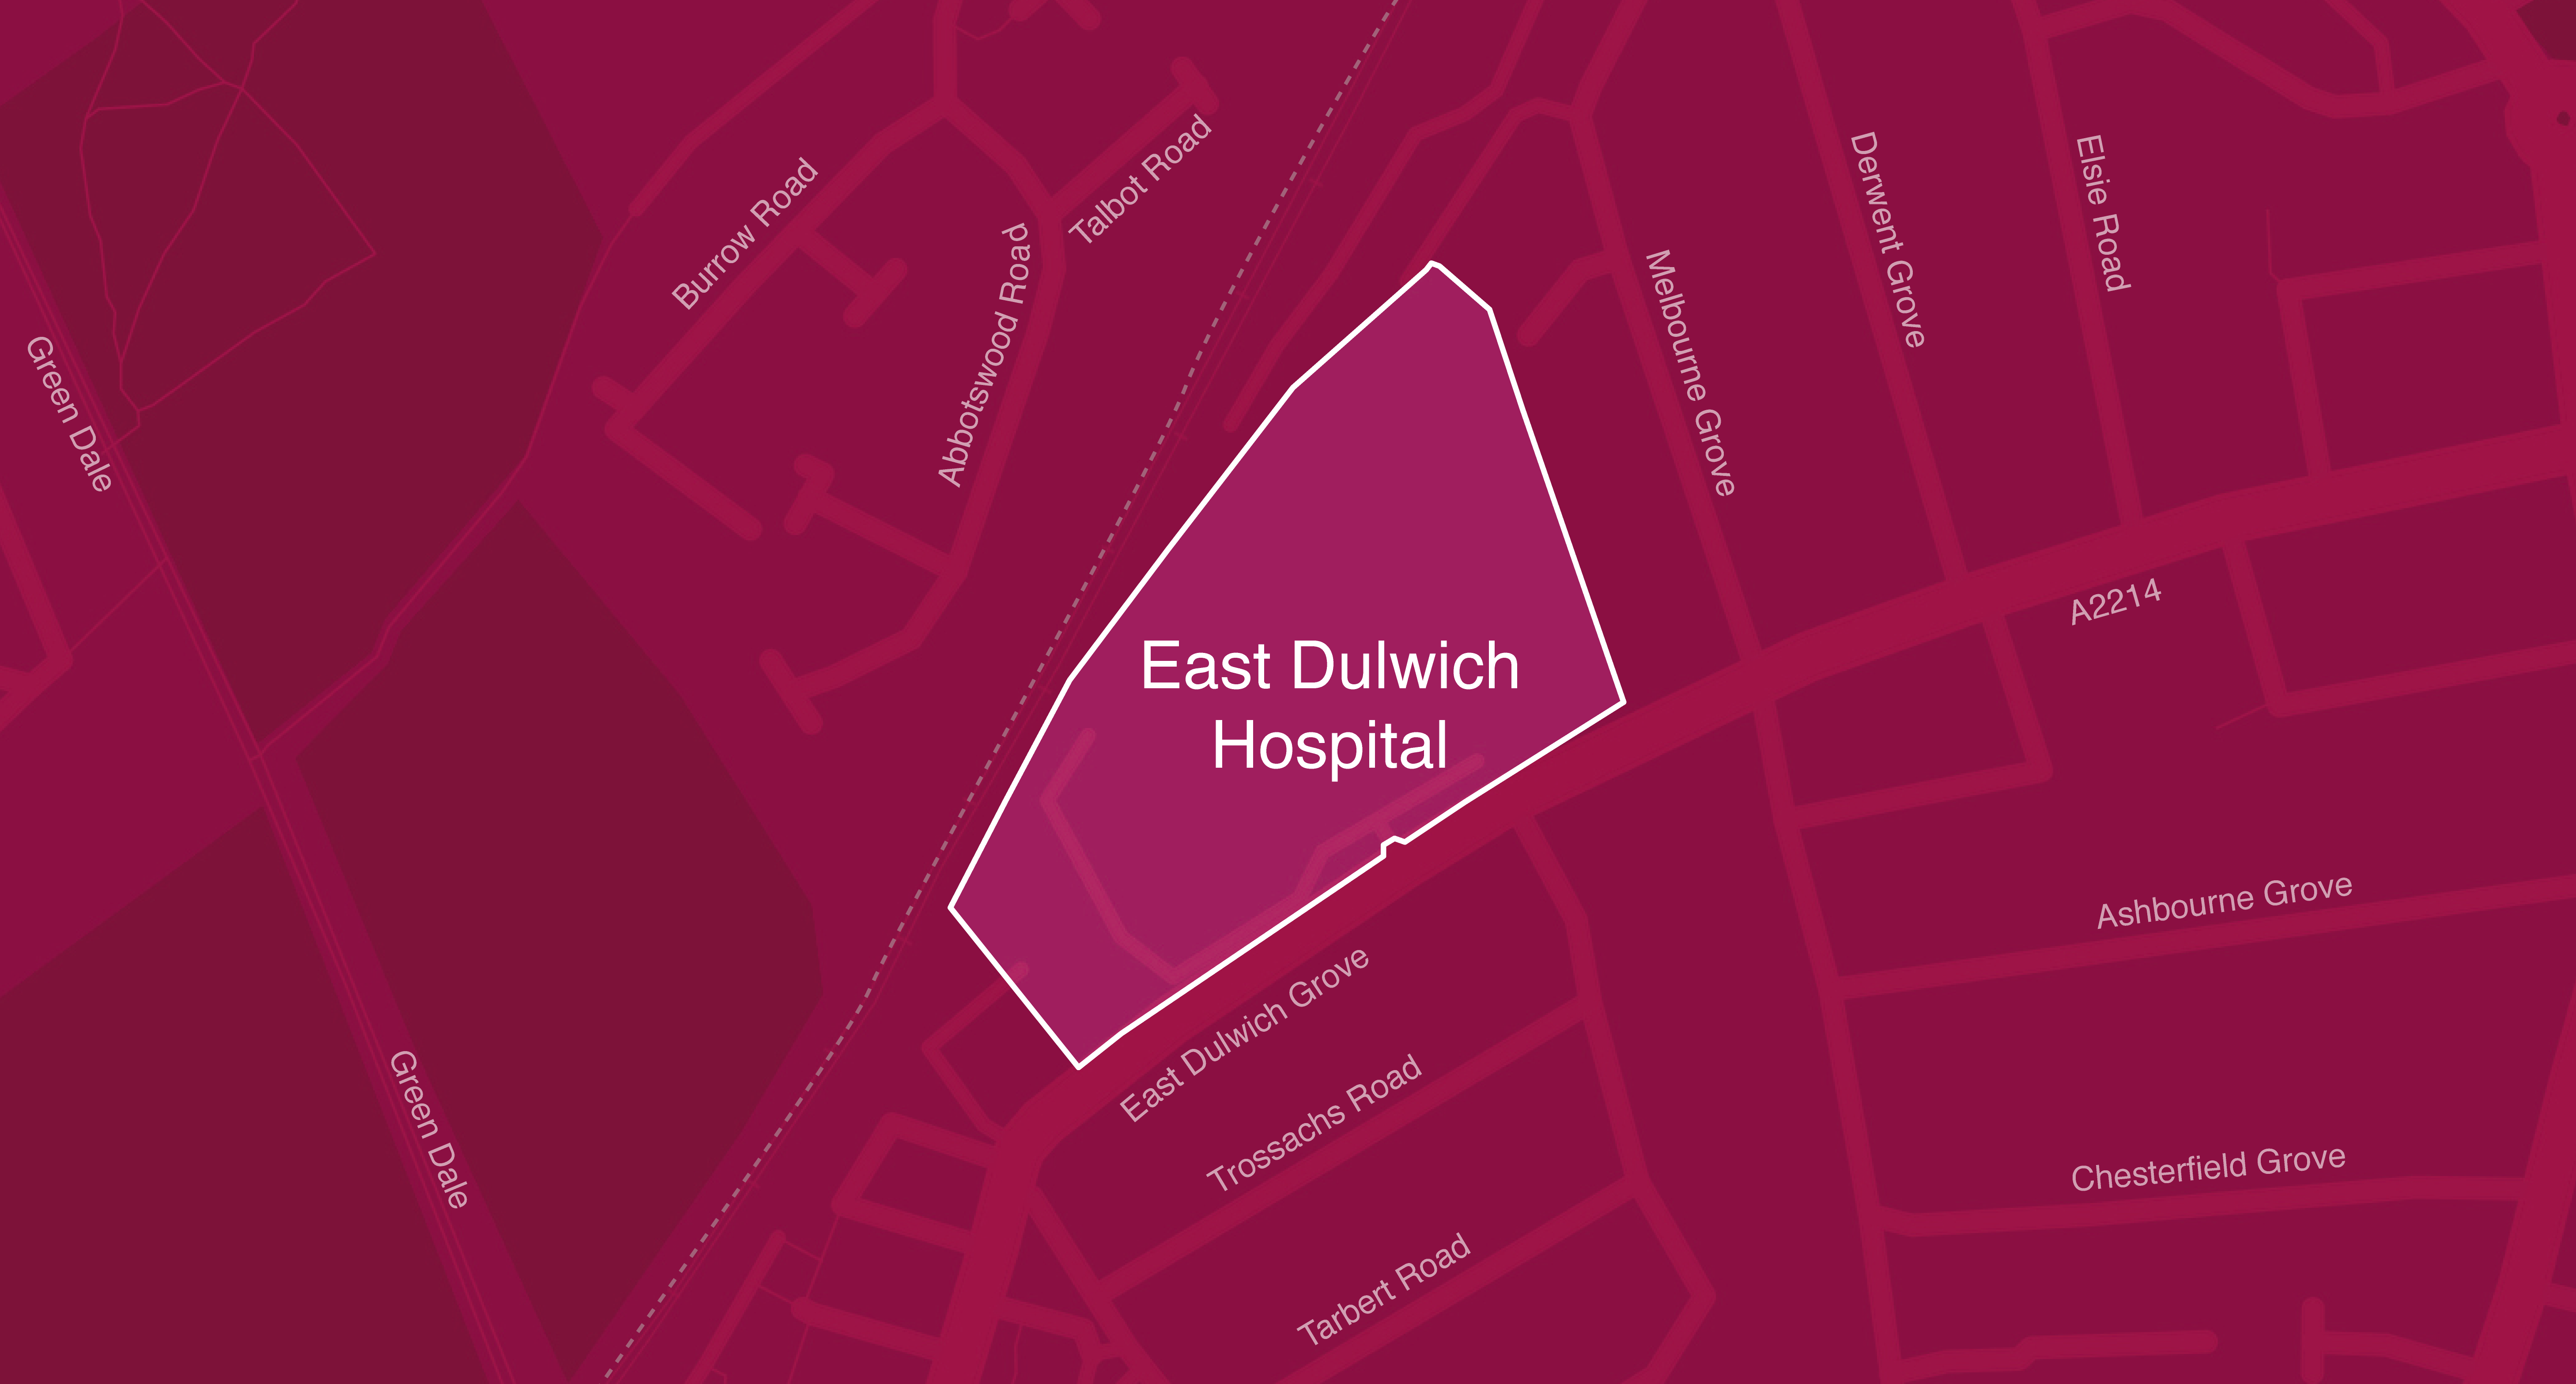 5603 East Dulwich Hospital 1400px by 752px 01